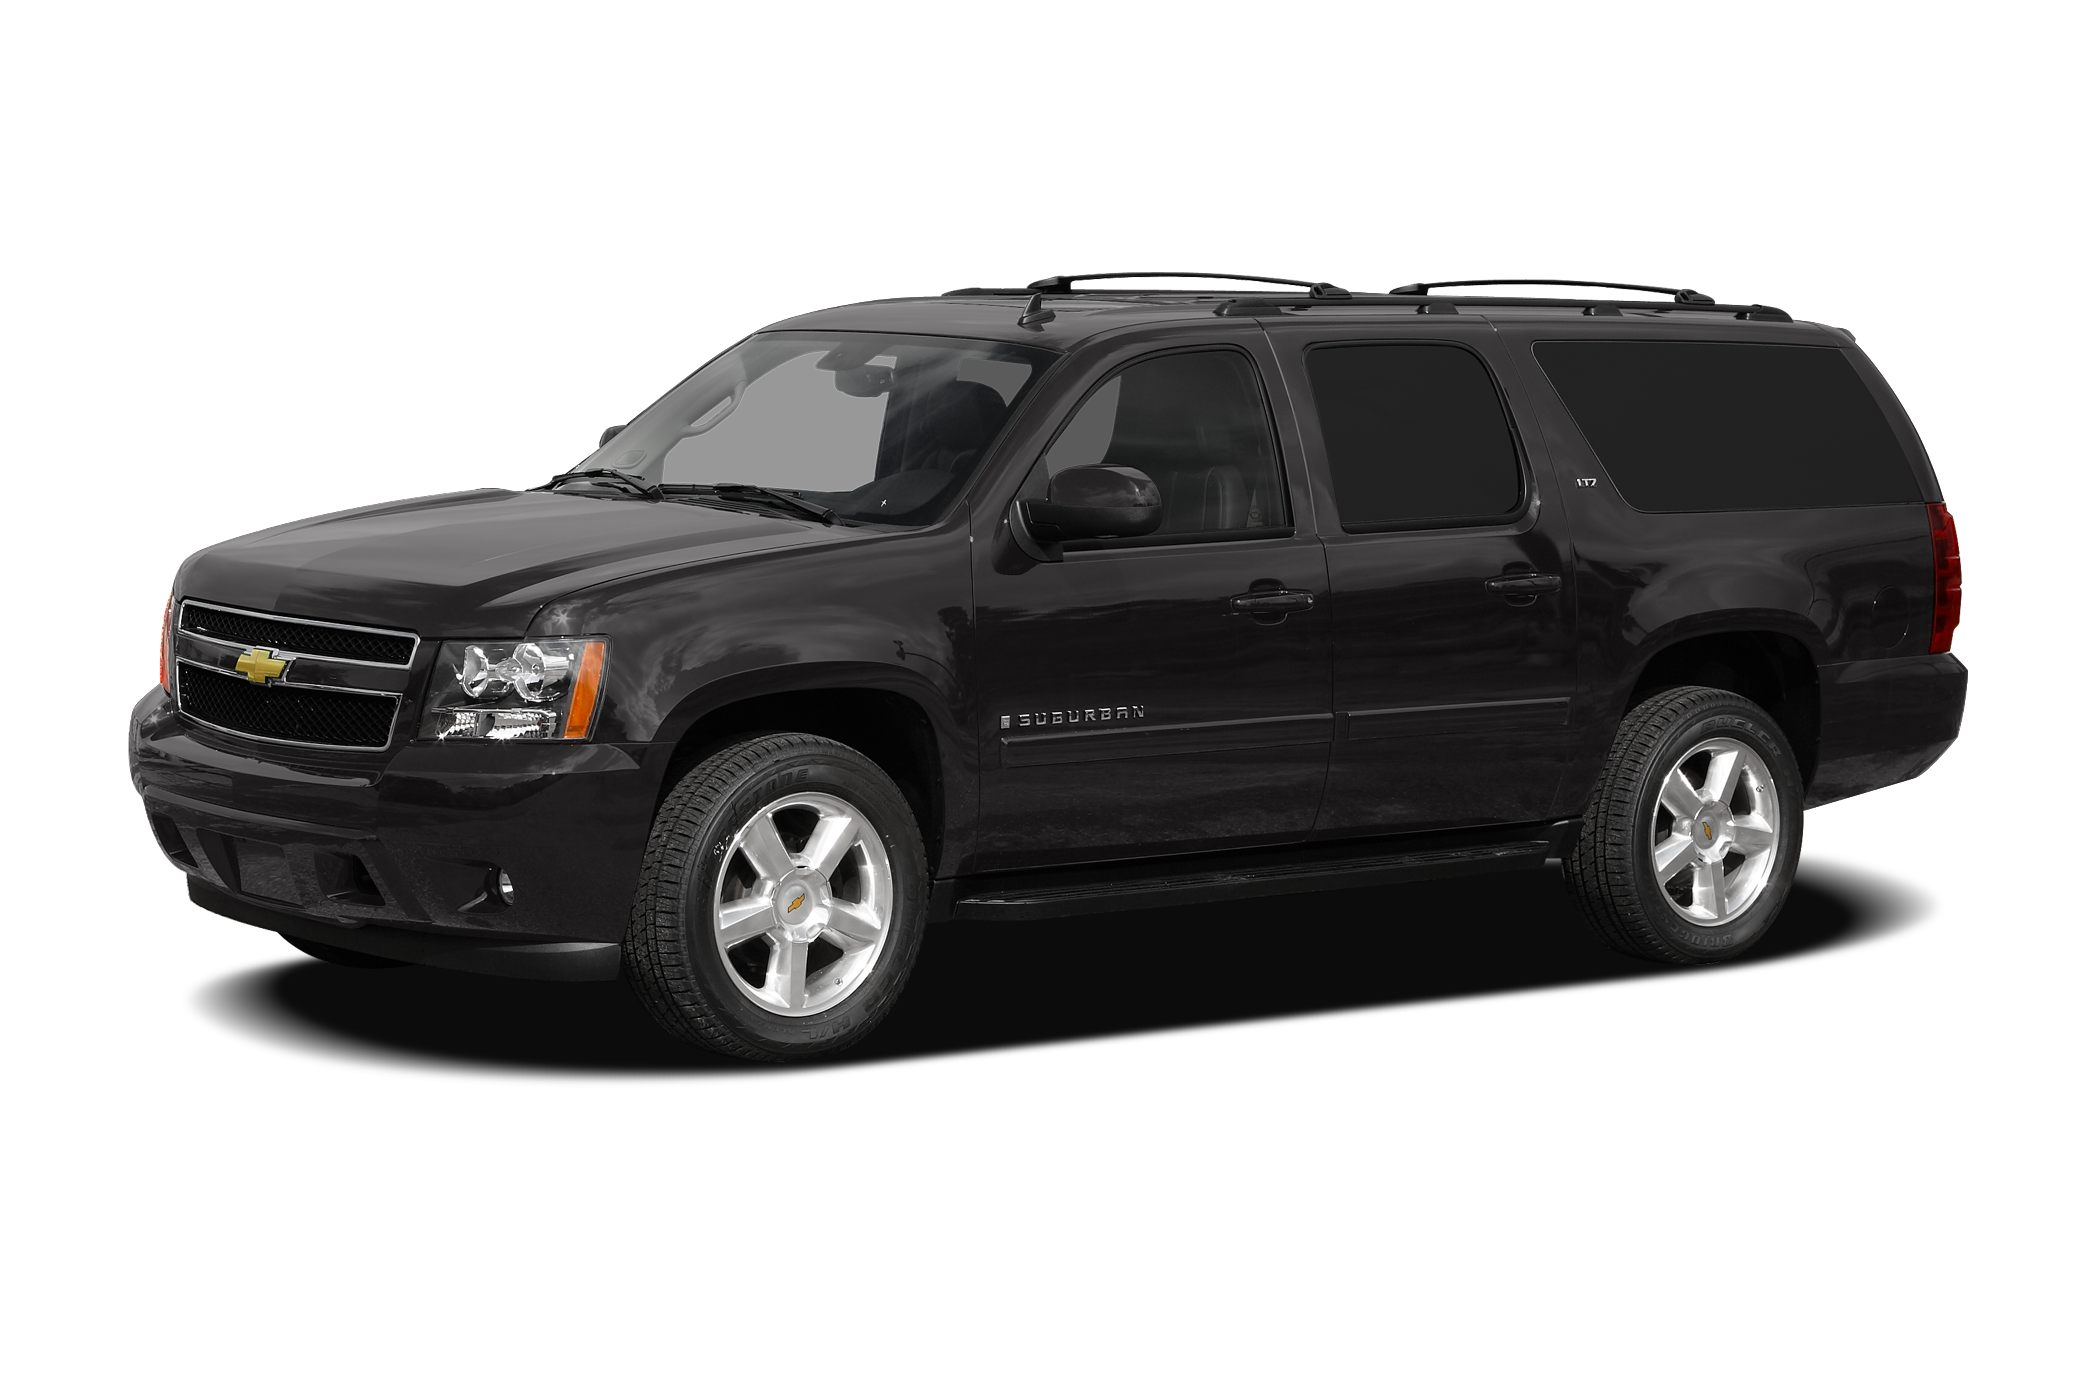 2008 Chevrolet Suburban 1500 LTZ SUV for sale in Greer for $24,900 with 104,015 miles.